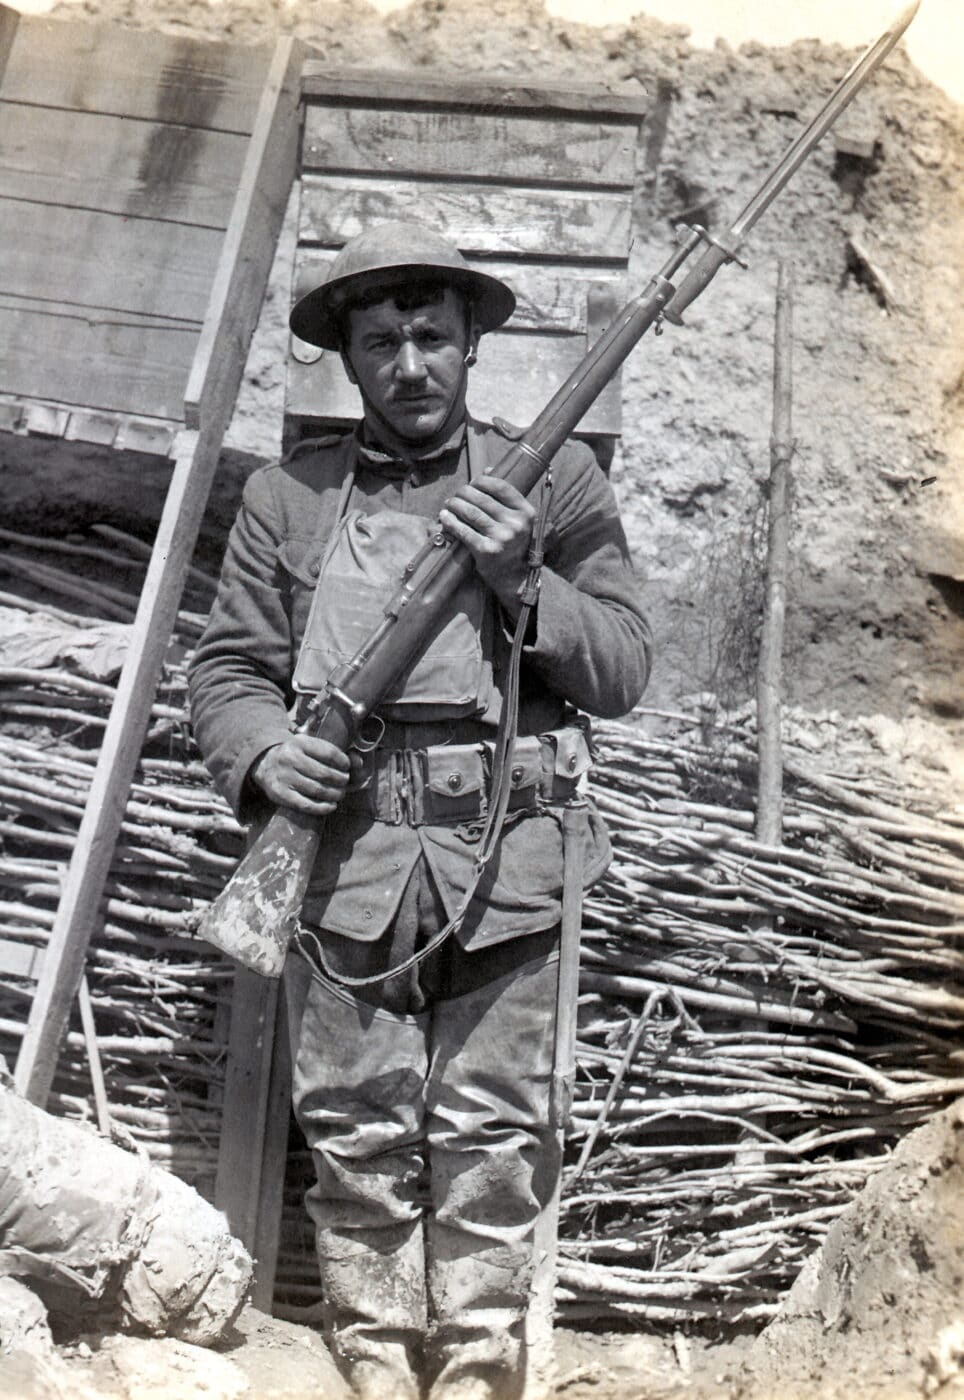 Battle-hardened U.S. soldier and his M1903 during WWI